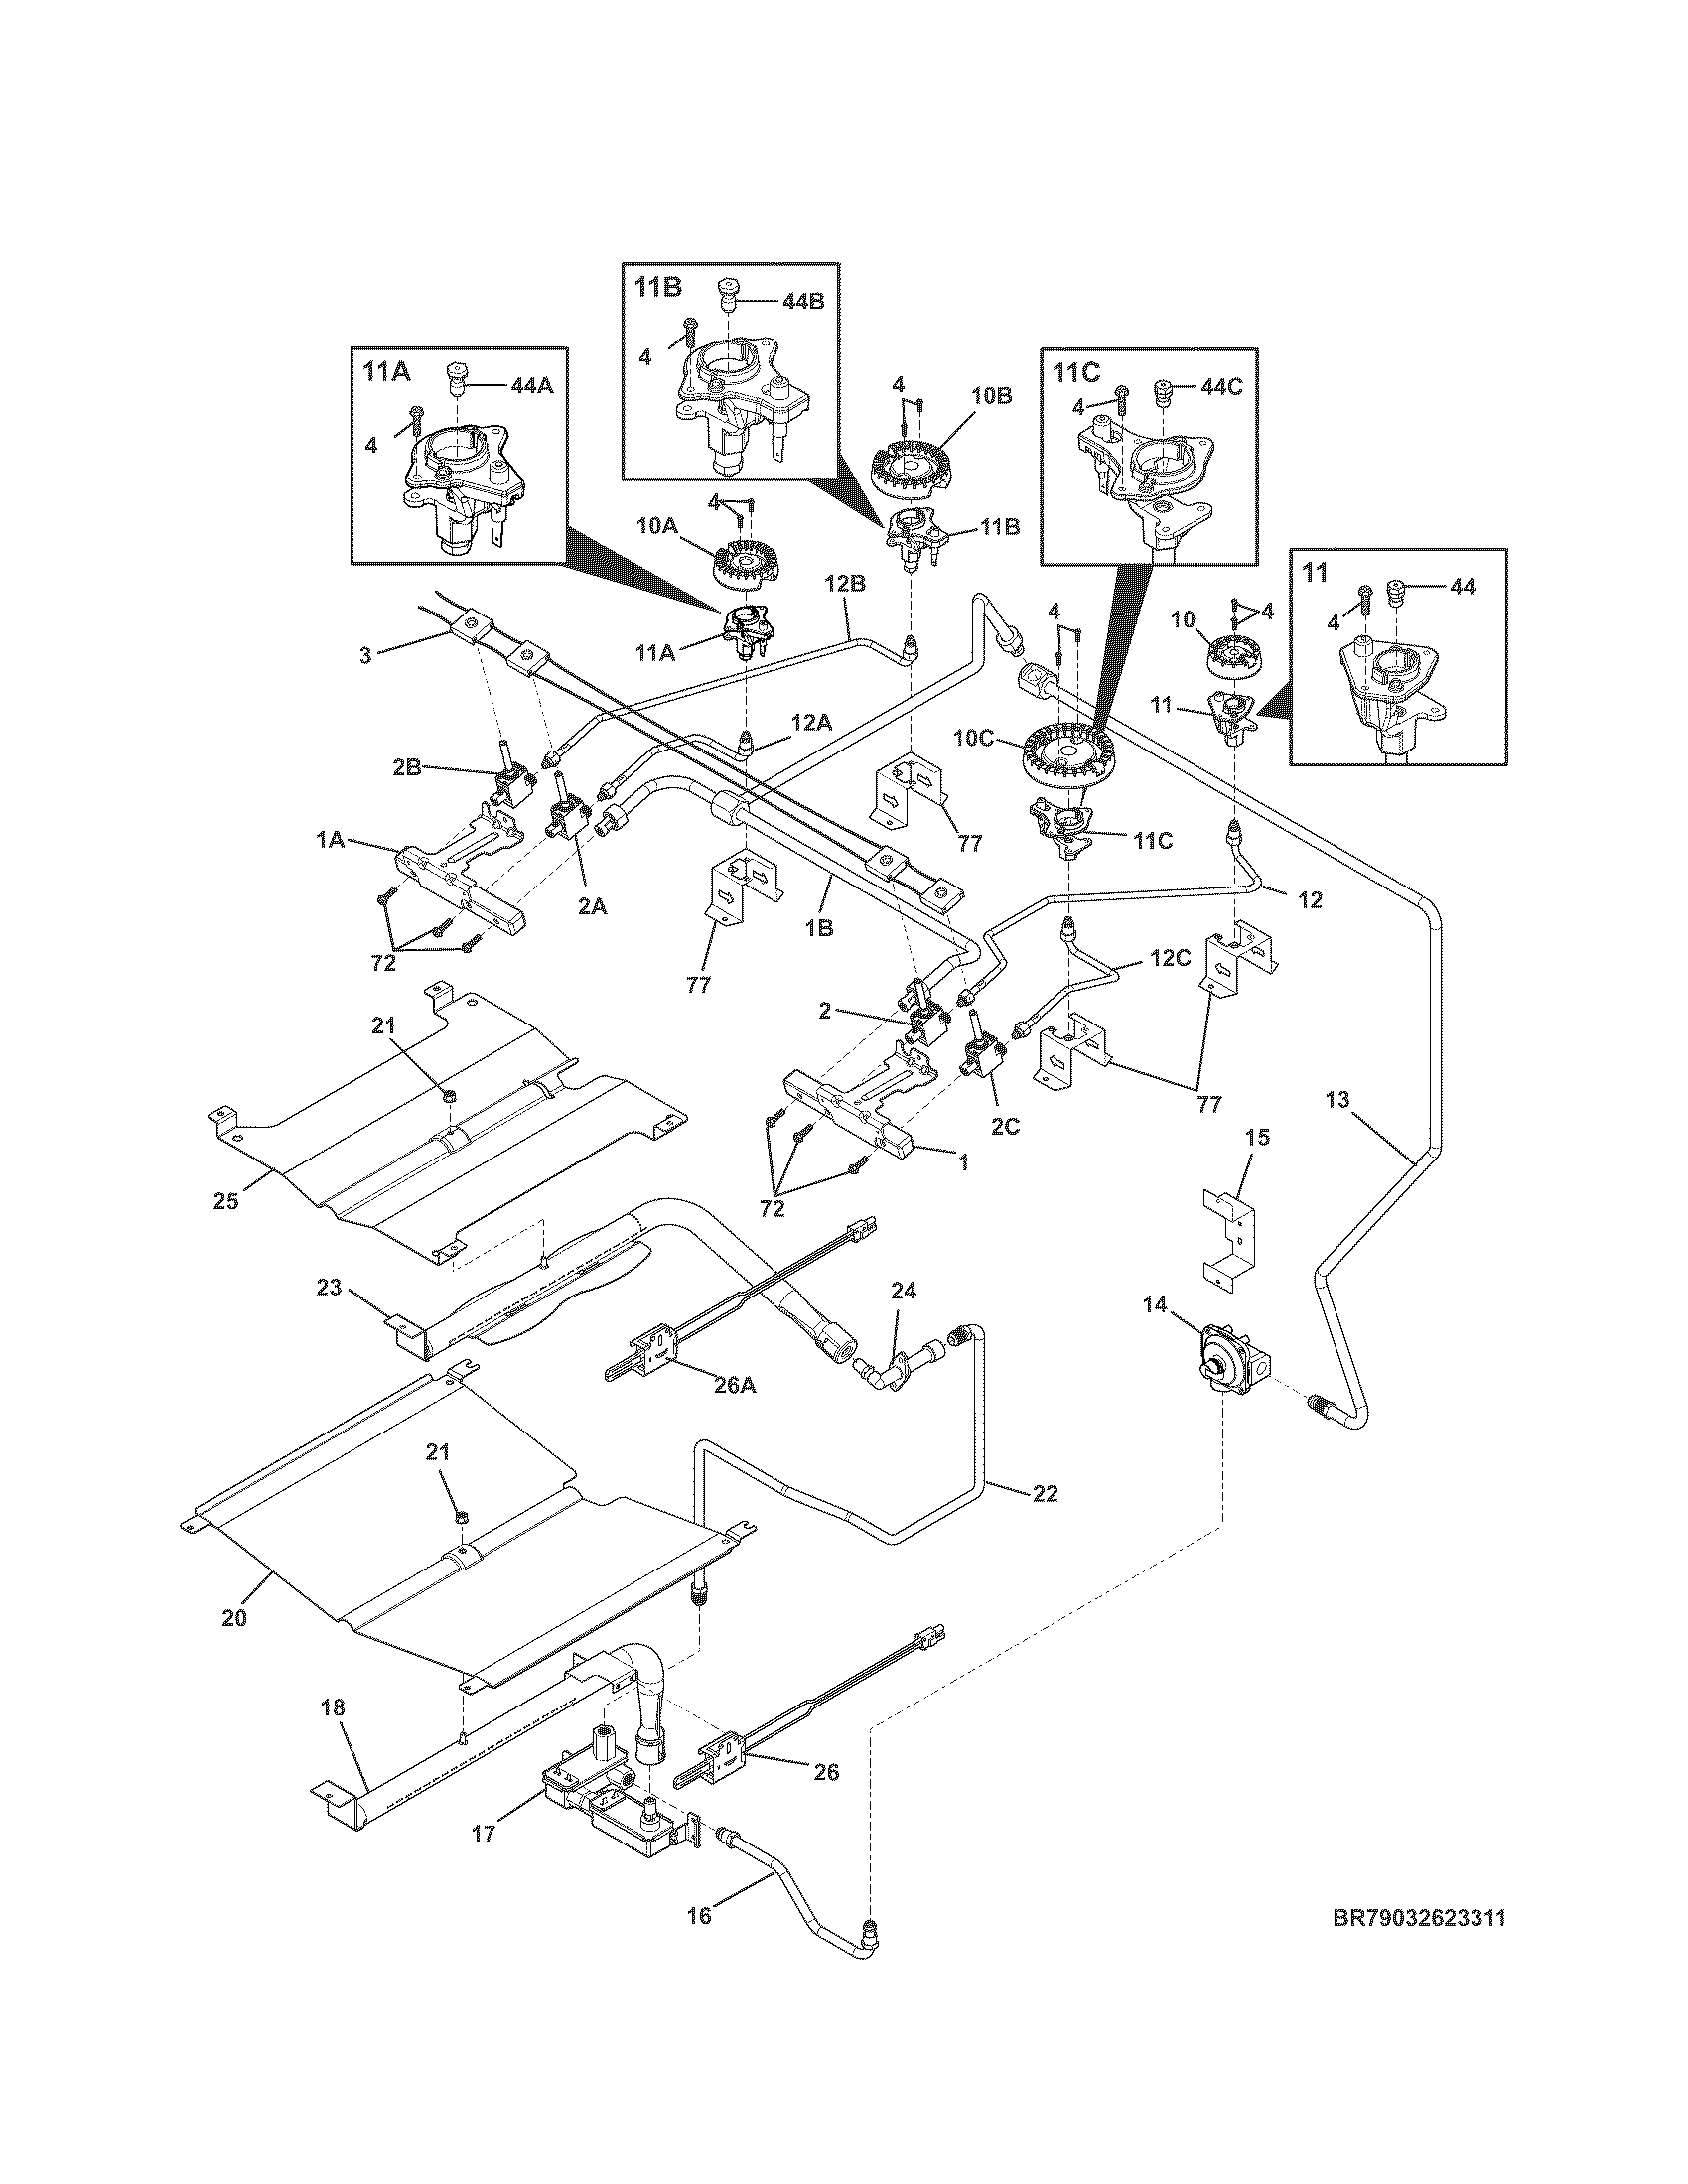 BURNER Diagram & Parts List for Model 79032623311 Kenmore